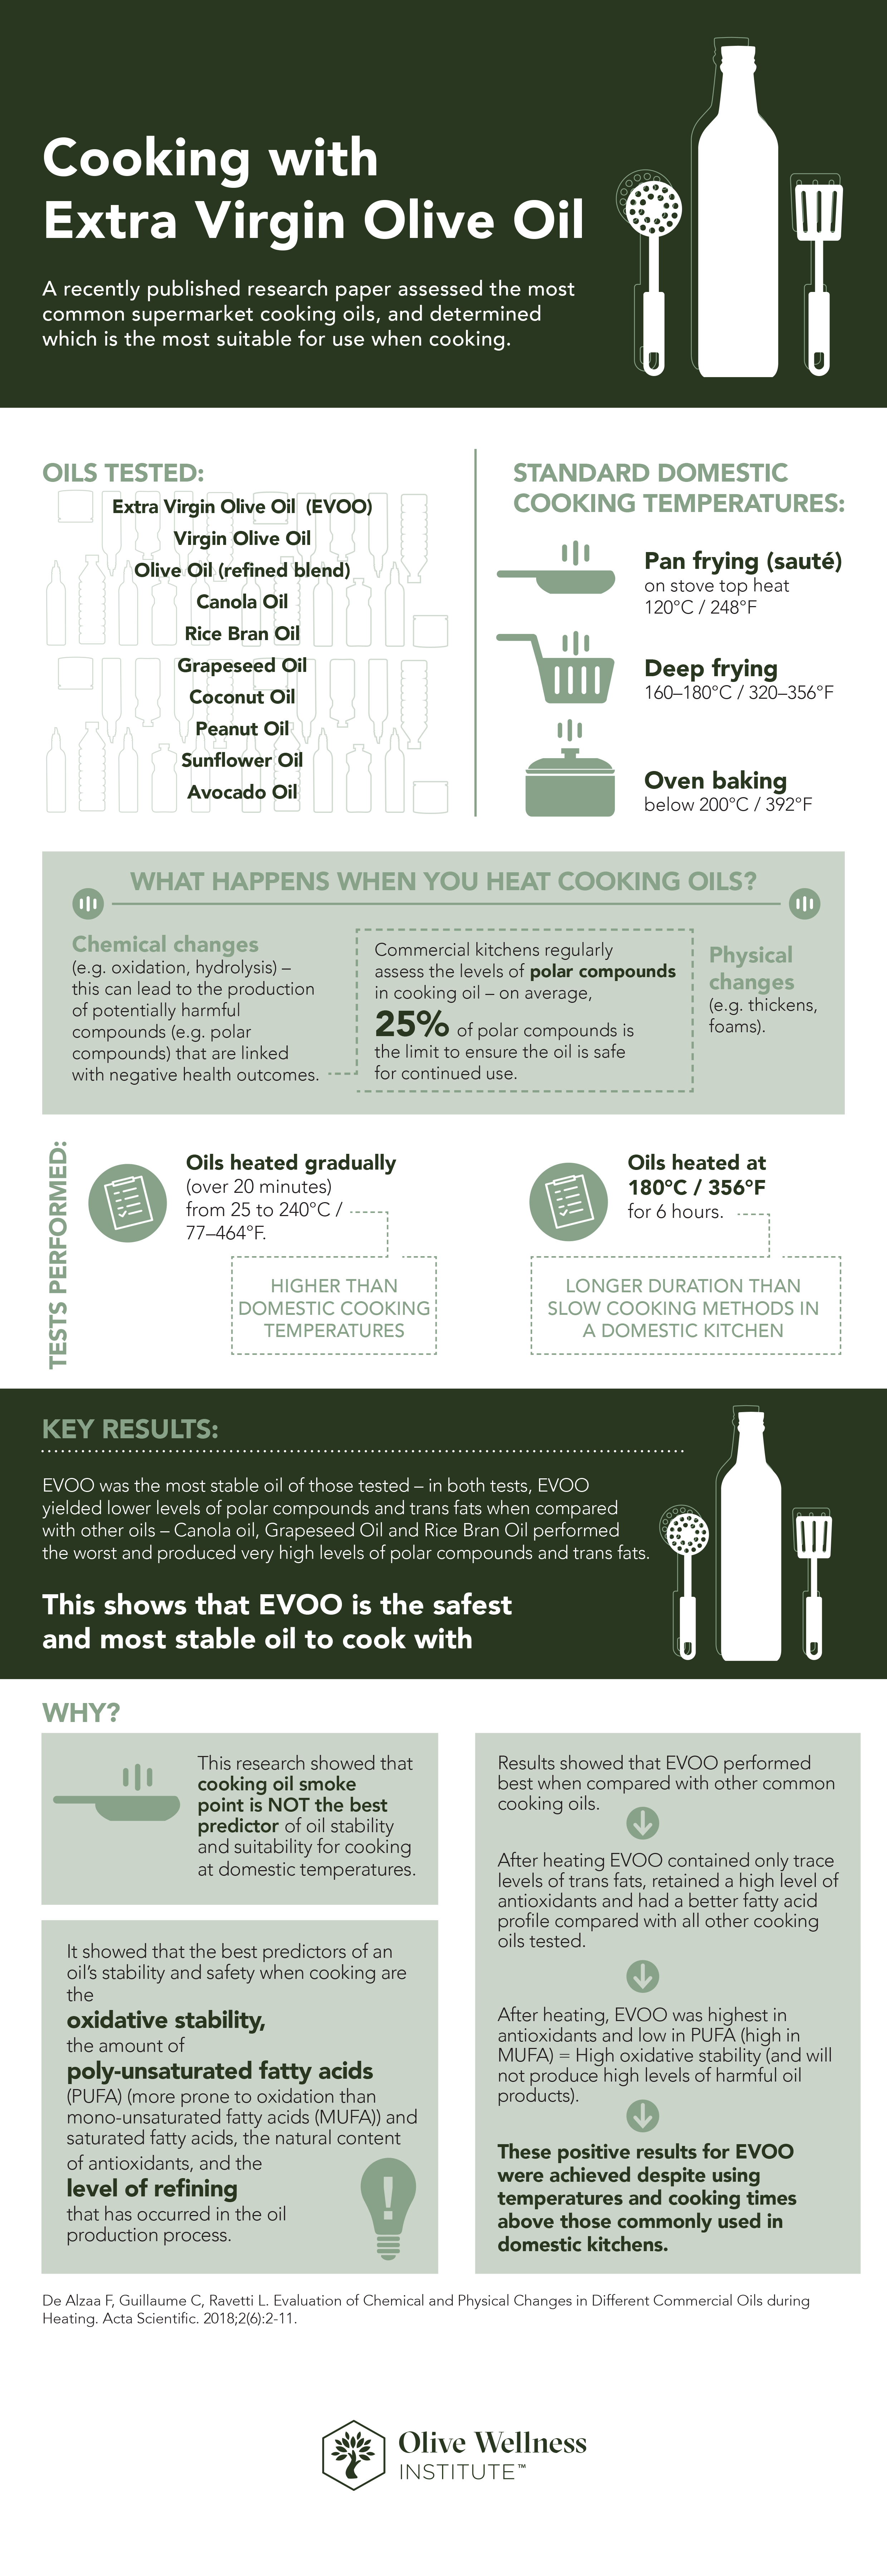 OWI_USA_HCP Safe to Cook with EVOO Infographic_2018